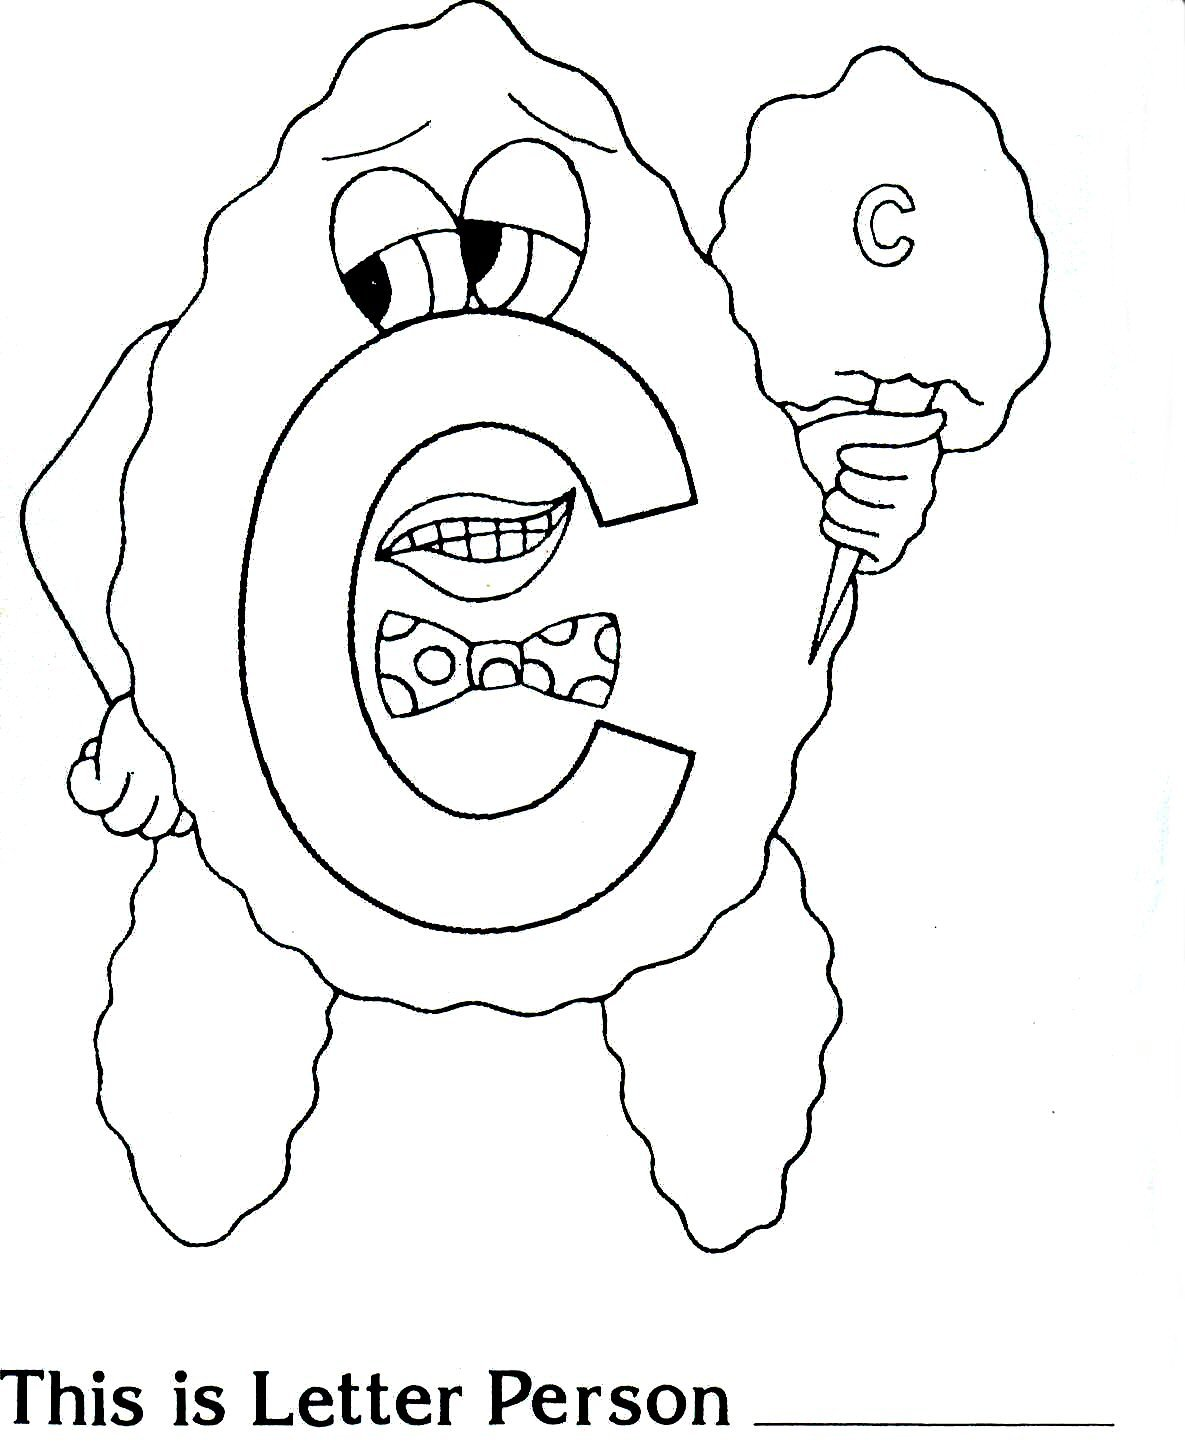 Letter People Coloring Page 28792,